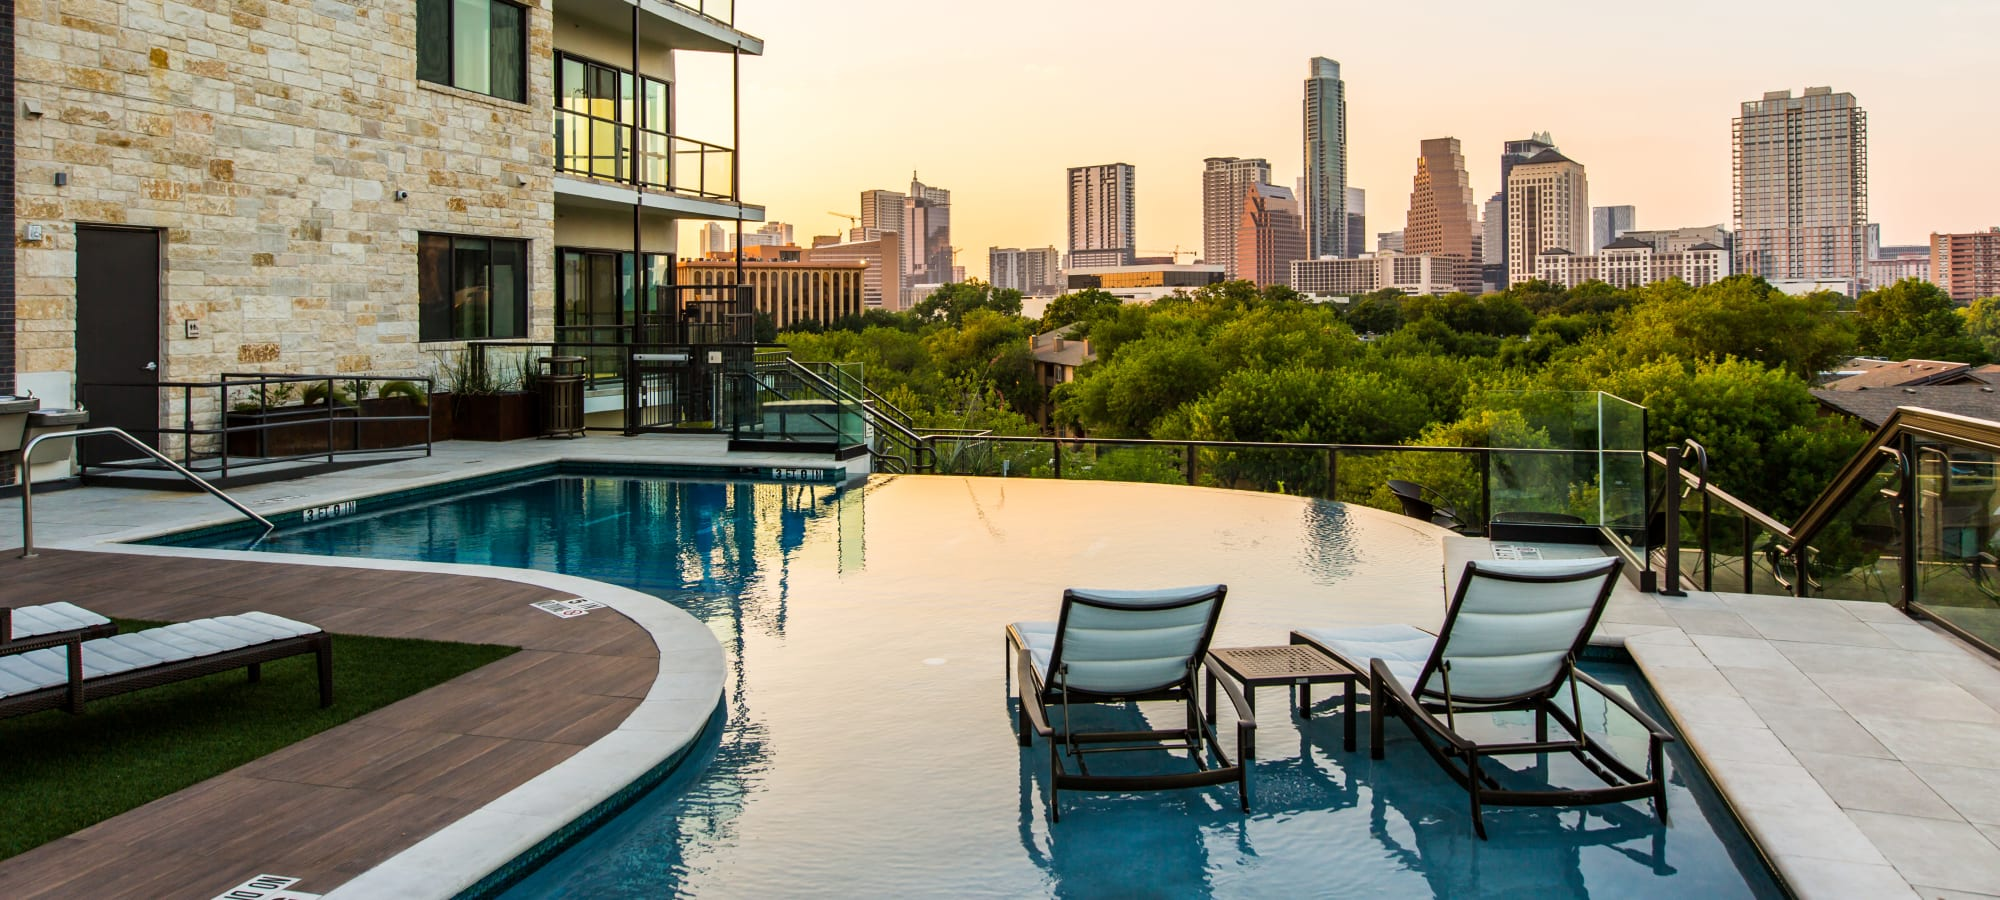 Amenities at Water Marq in Austin, Texas